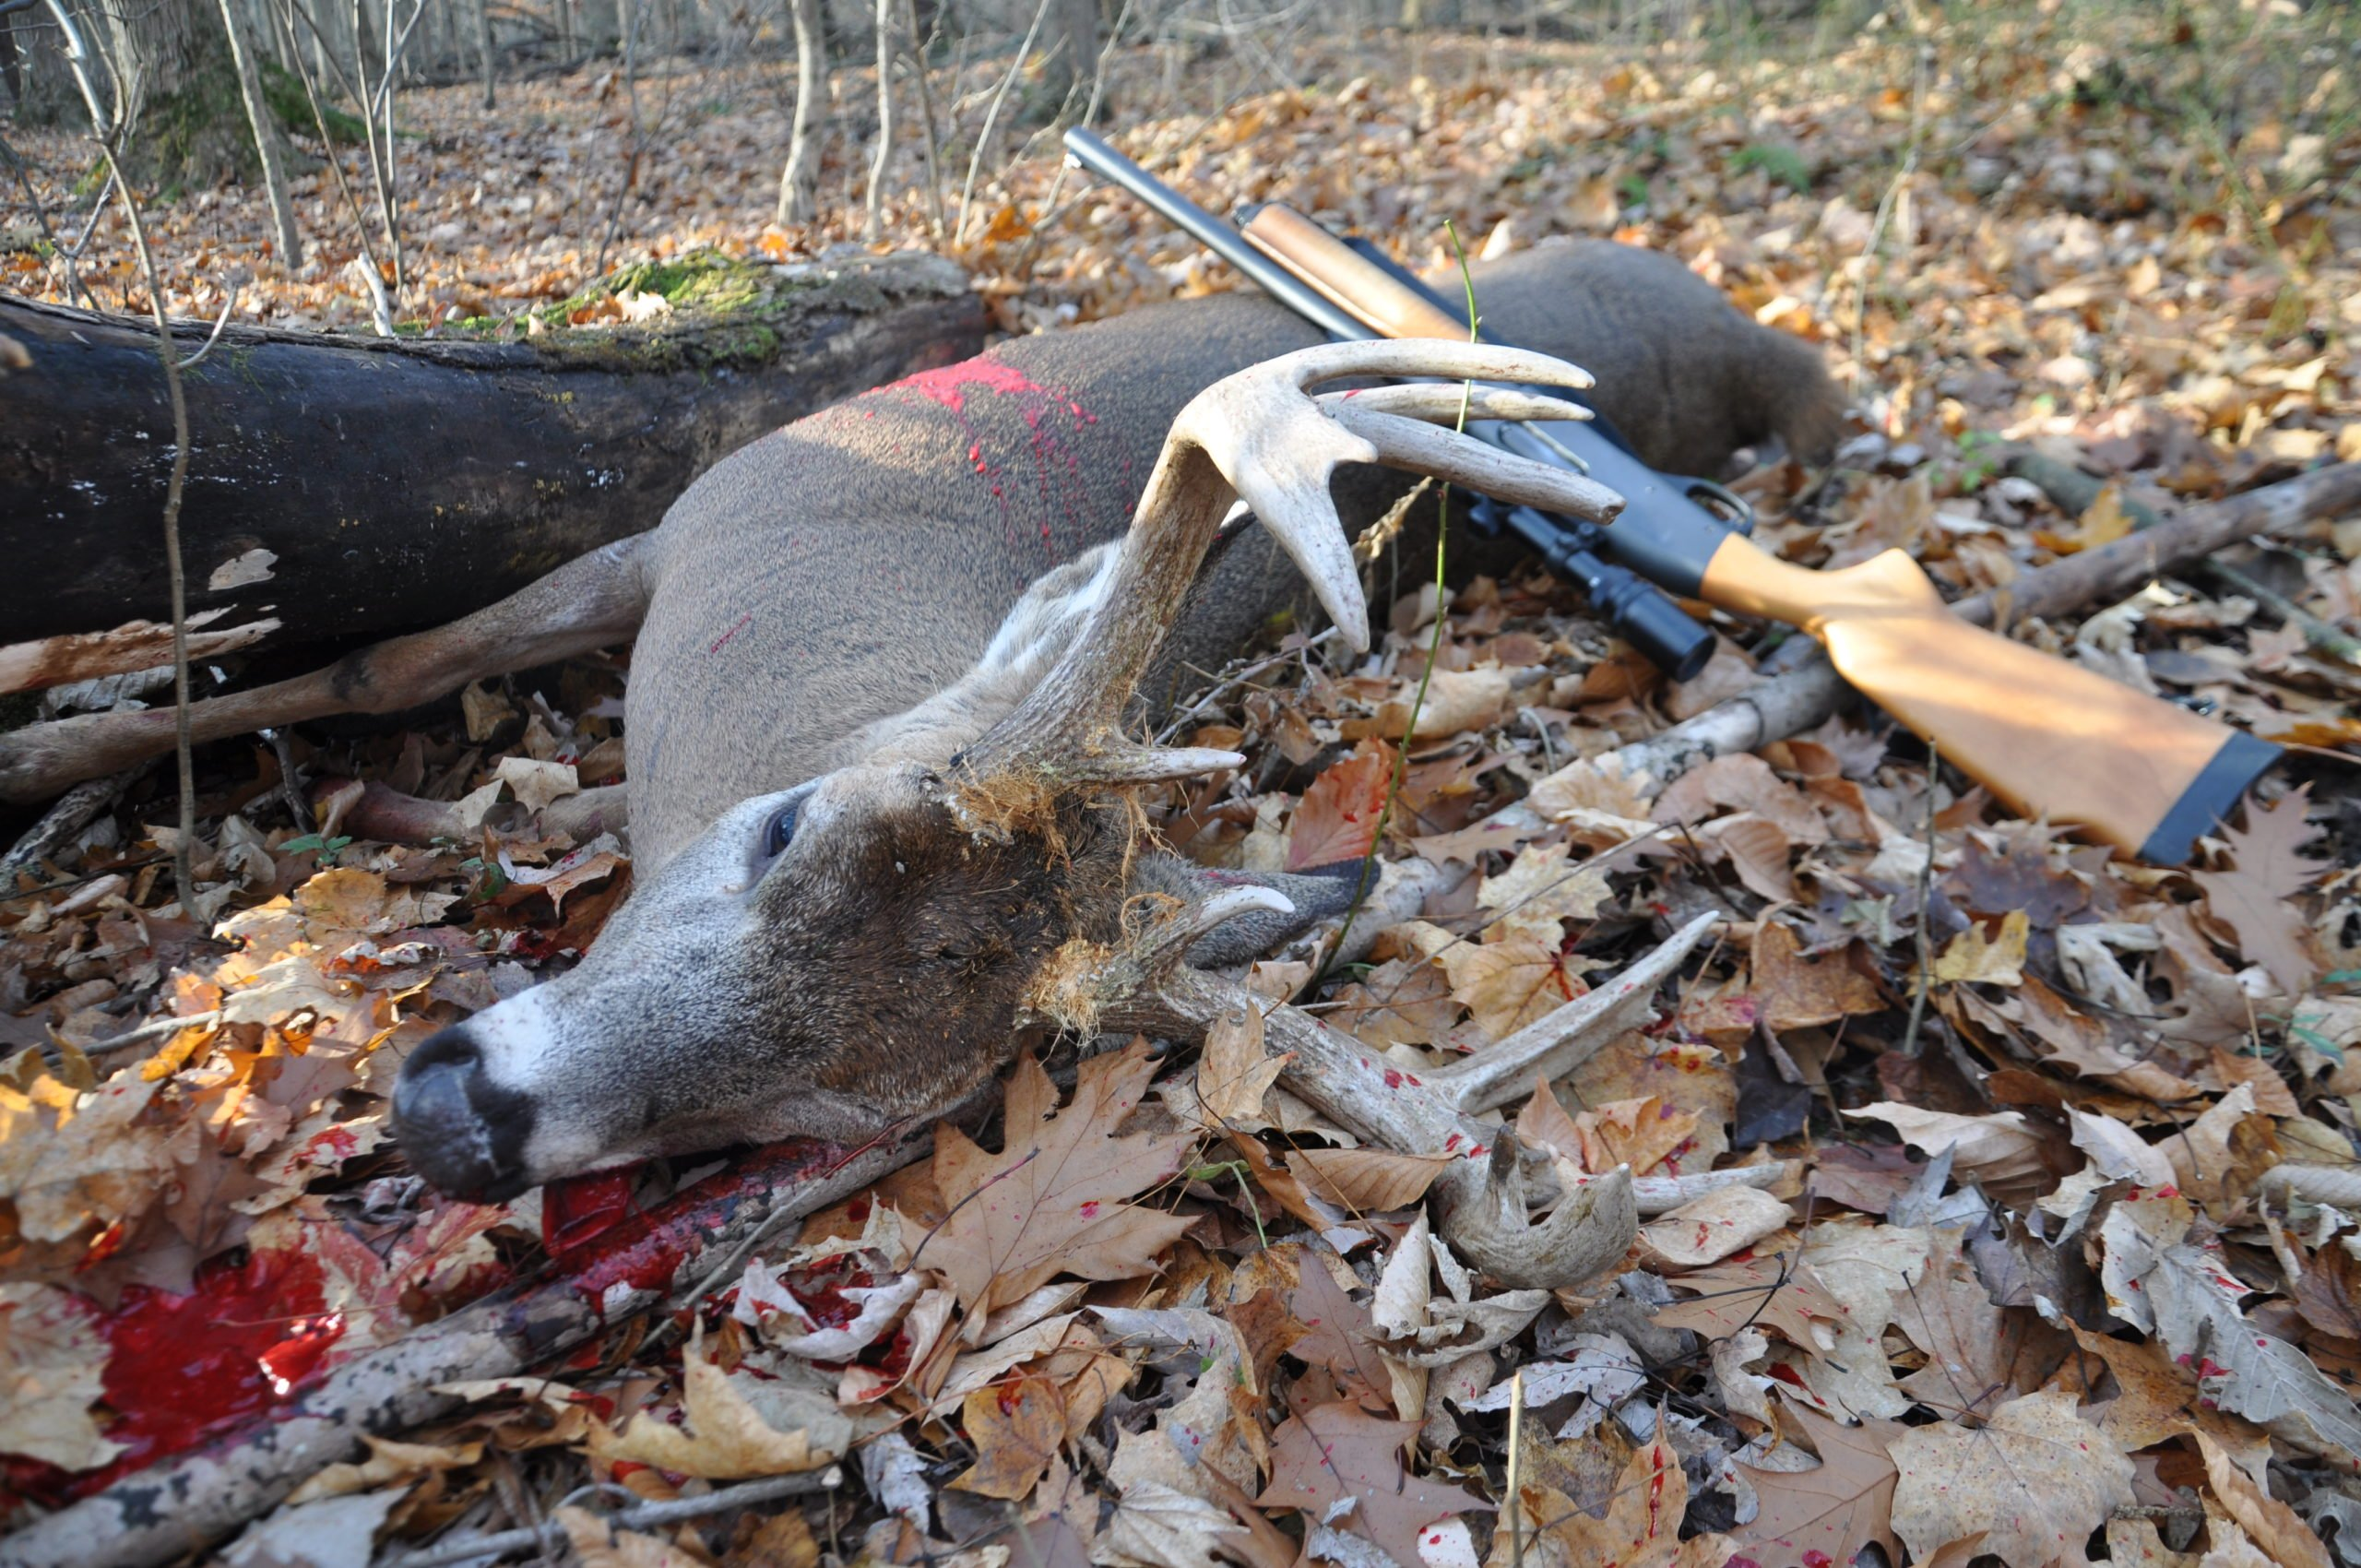 Shotgun vs Rifle for Deer